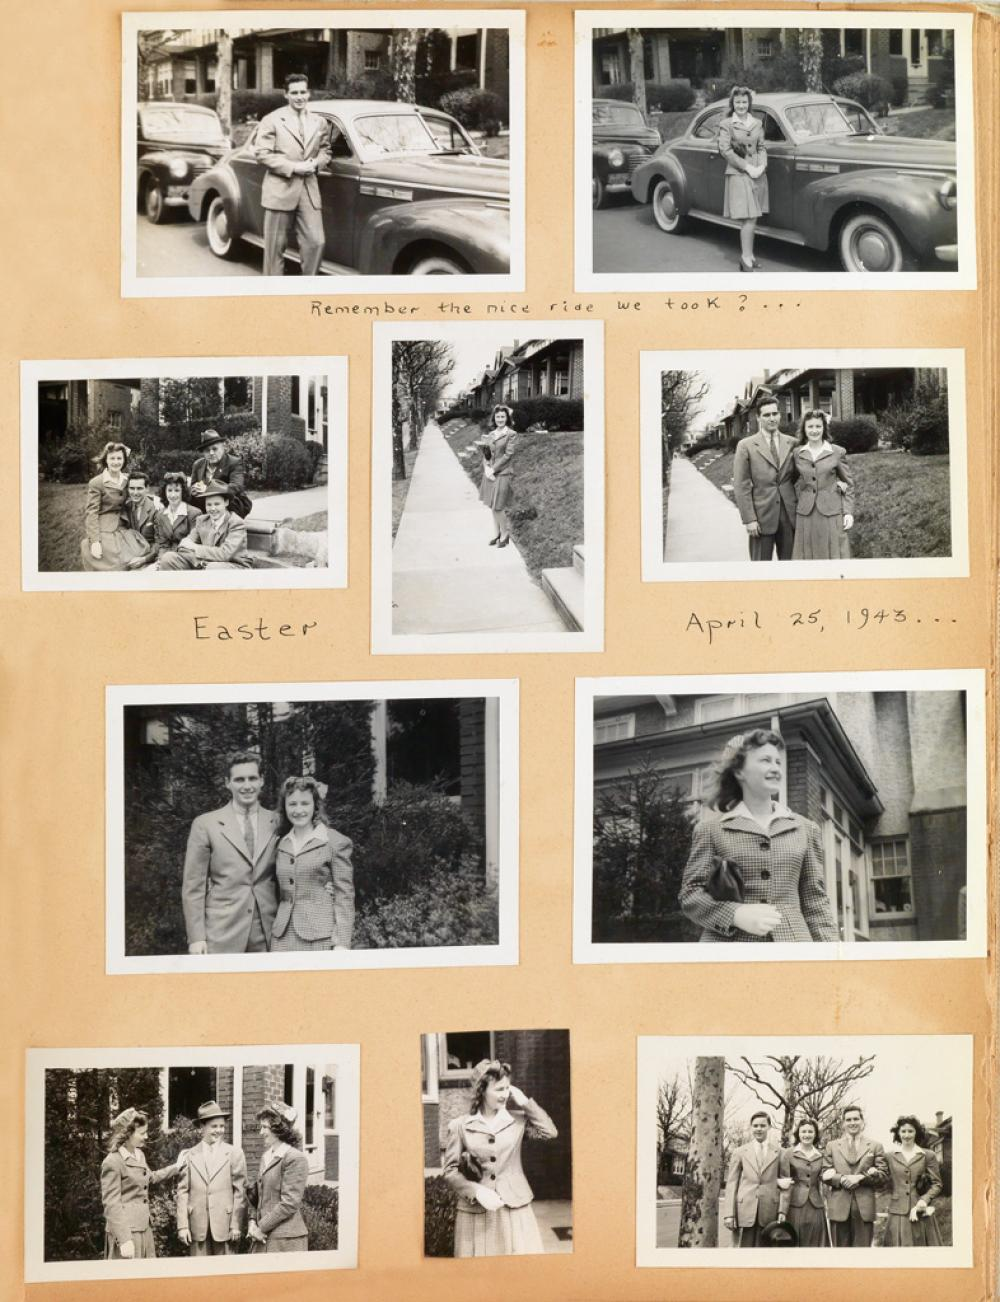 (VERNACULAR LOVE STORY) A scrapbook tenderly documenting the love story of Virginia and Bob.